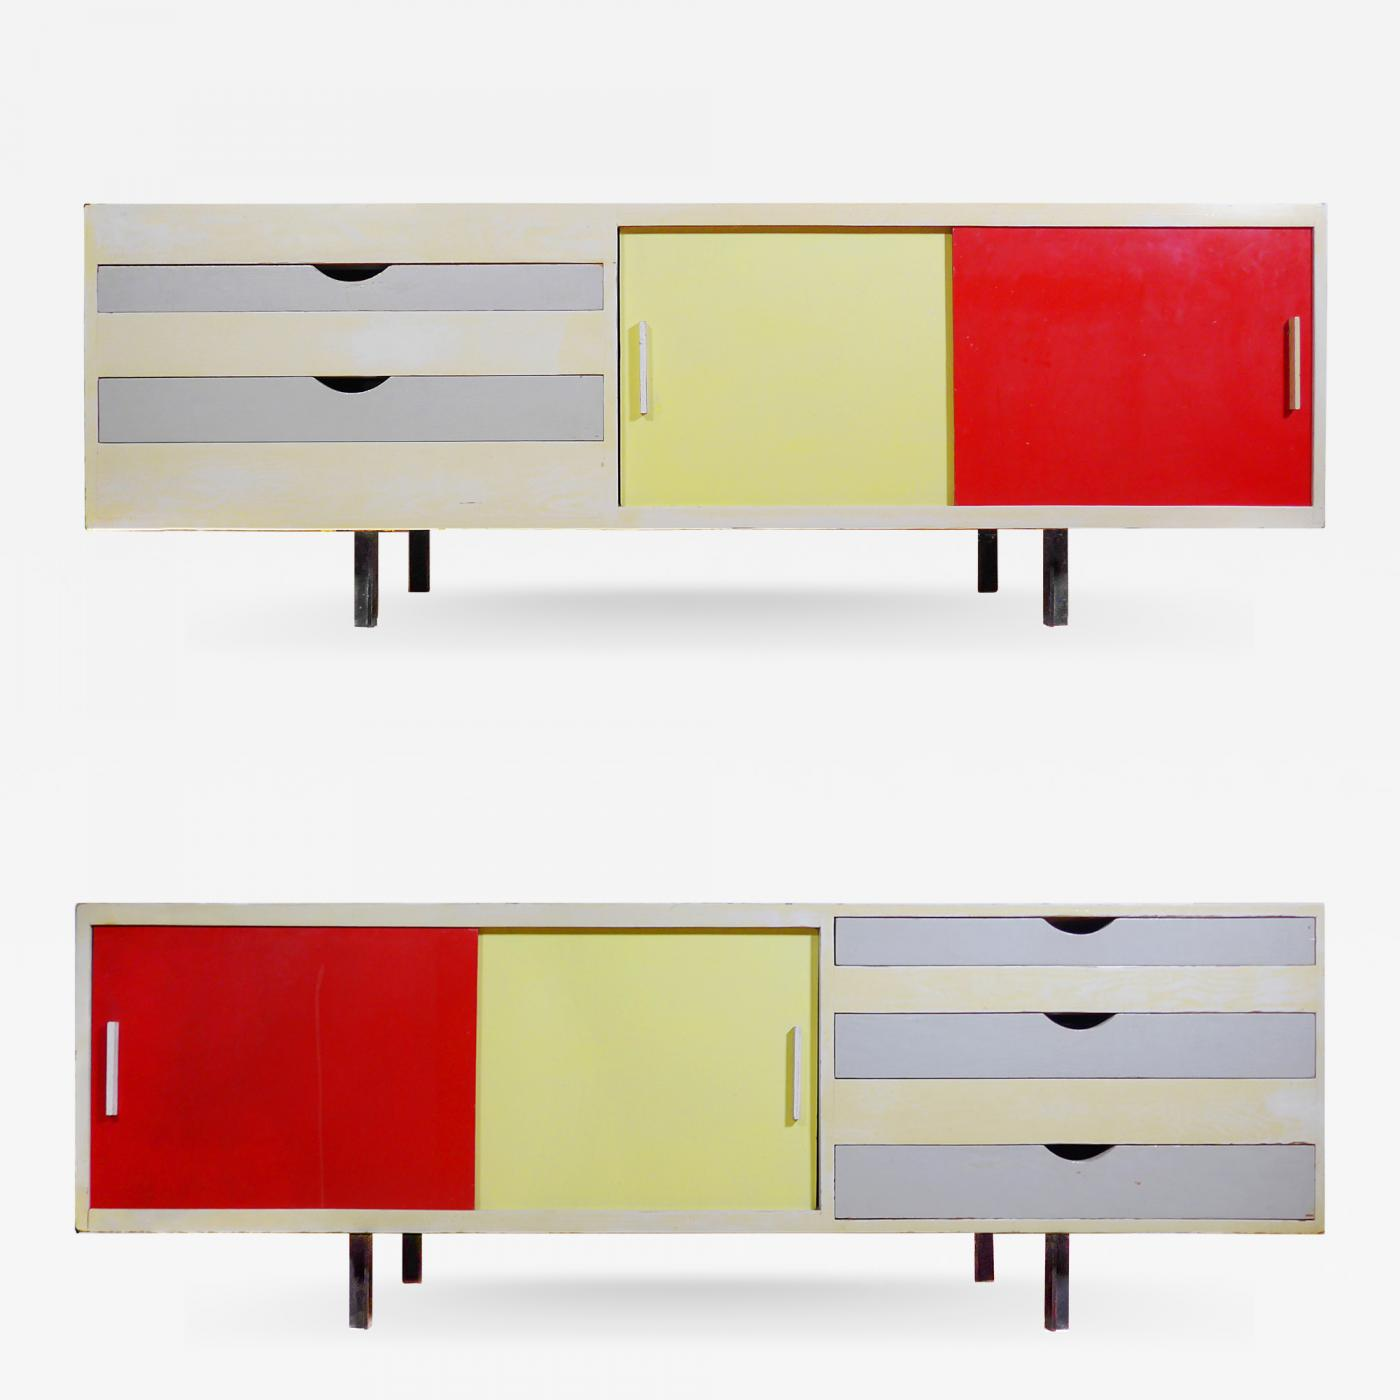 Listings / Furniture / Case Pieces u0026 Storage / Cabinets  sc 1 st  Incollect & John Sweeny - Chicago Bauhaus Artistu0027s Supply Cabinet